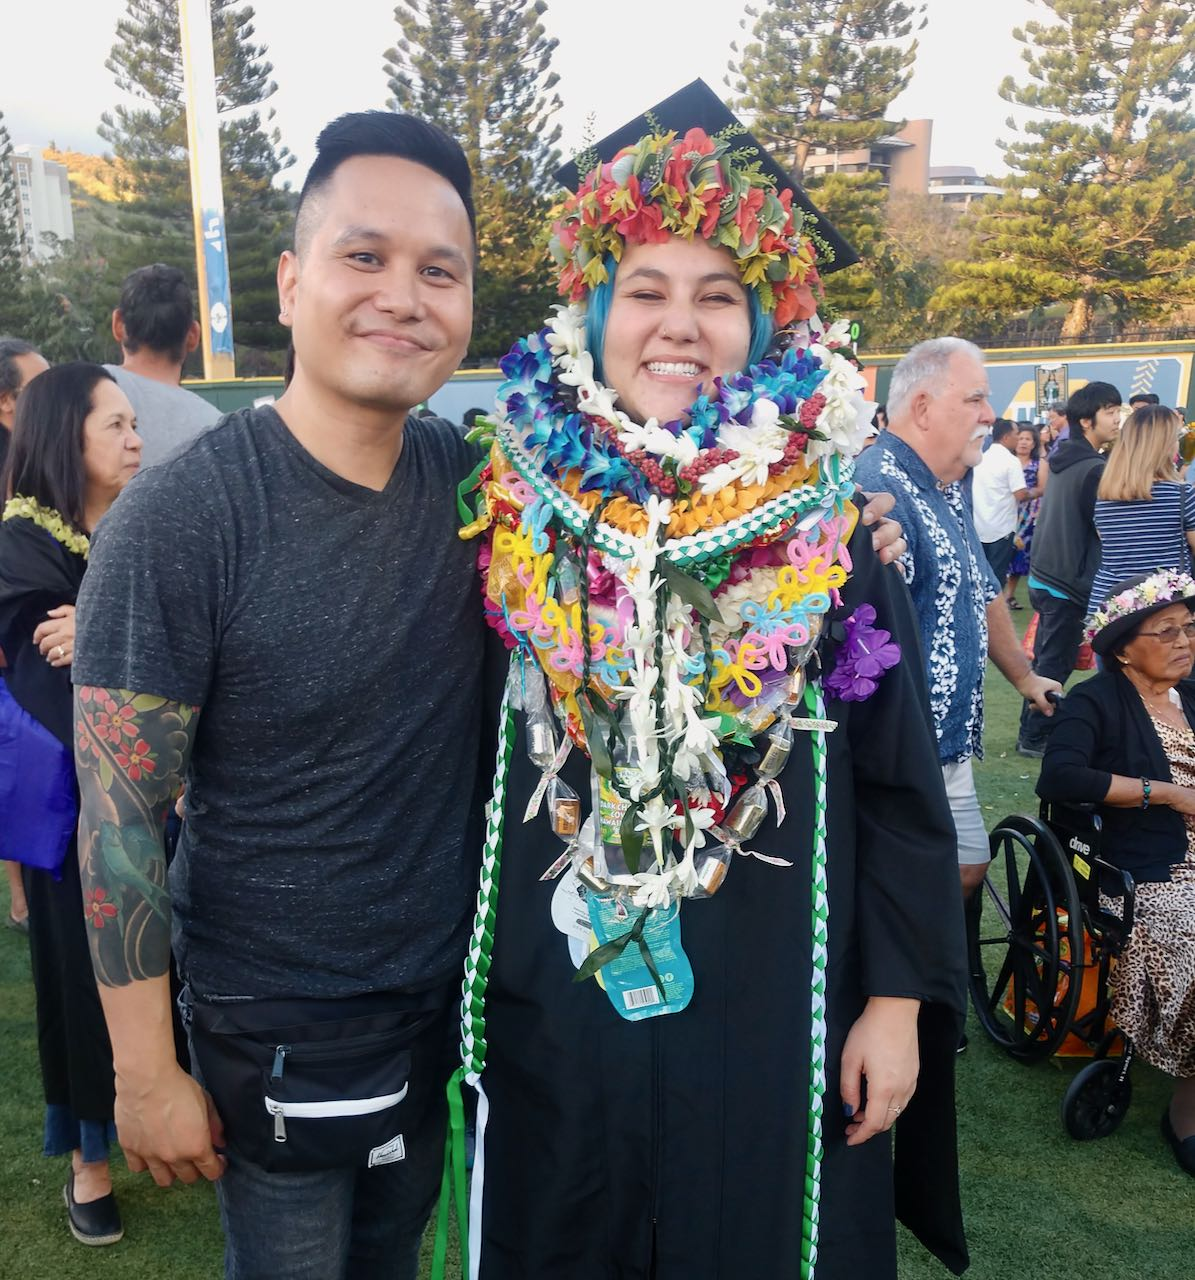 Nelson Lazaga and Michellei Fisher @ Summer Commencement 2019